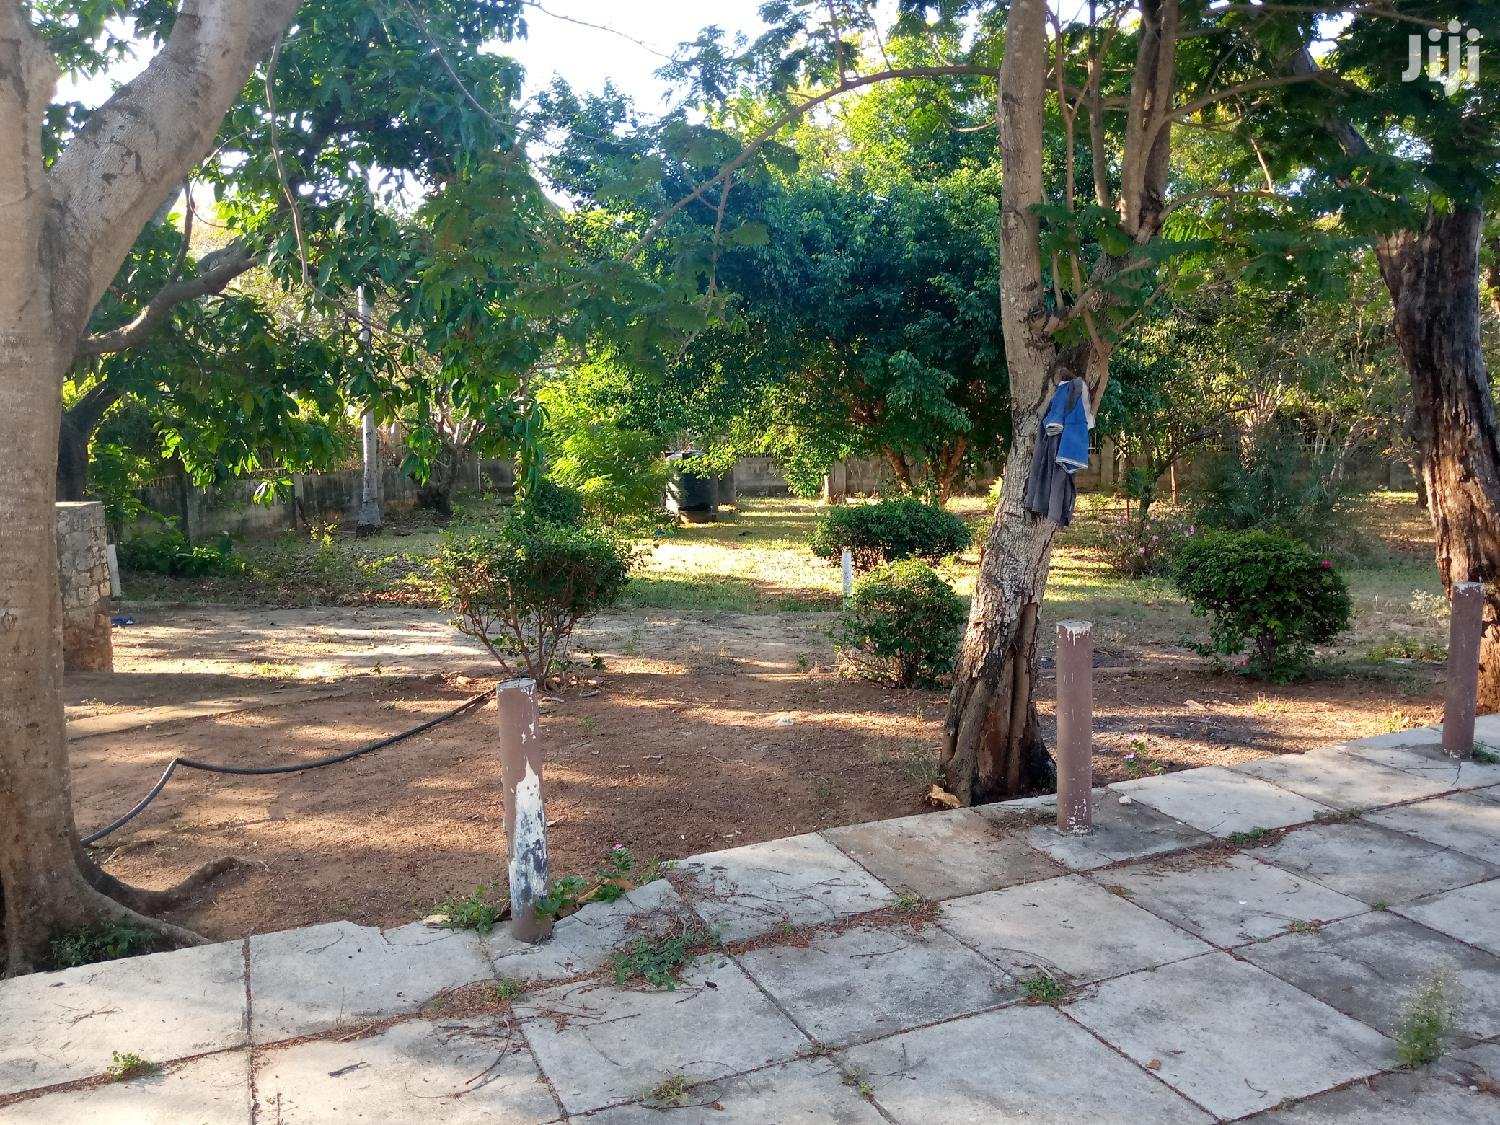 Big Plot for Sale in Oysterby Sqm 6000 Title Deed Available. | Land & Plots For Sale for sale in Mikocheni, Kinondoni, Tanzania